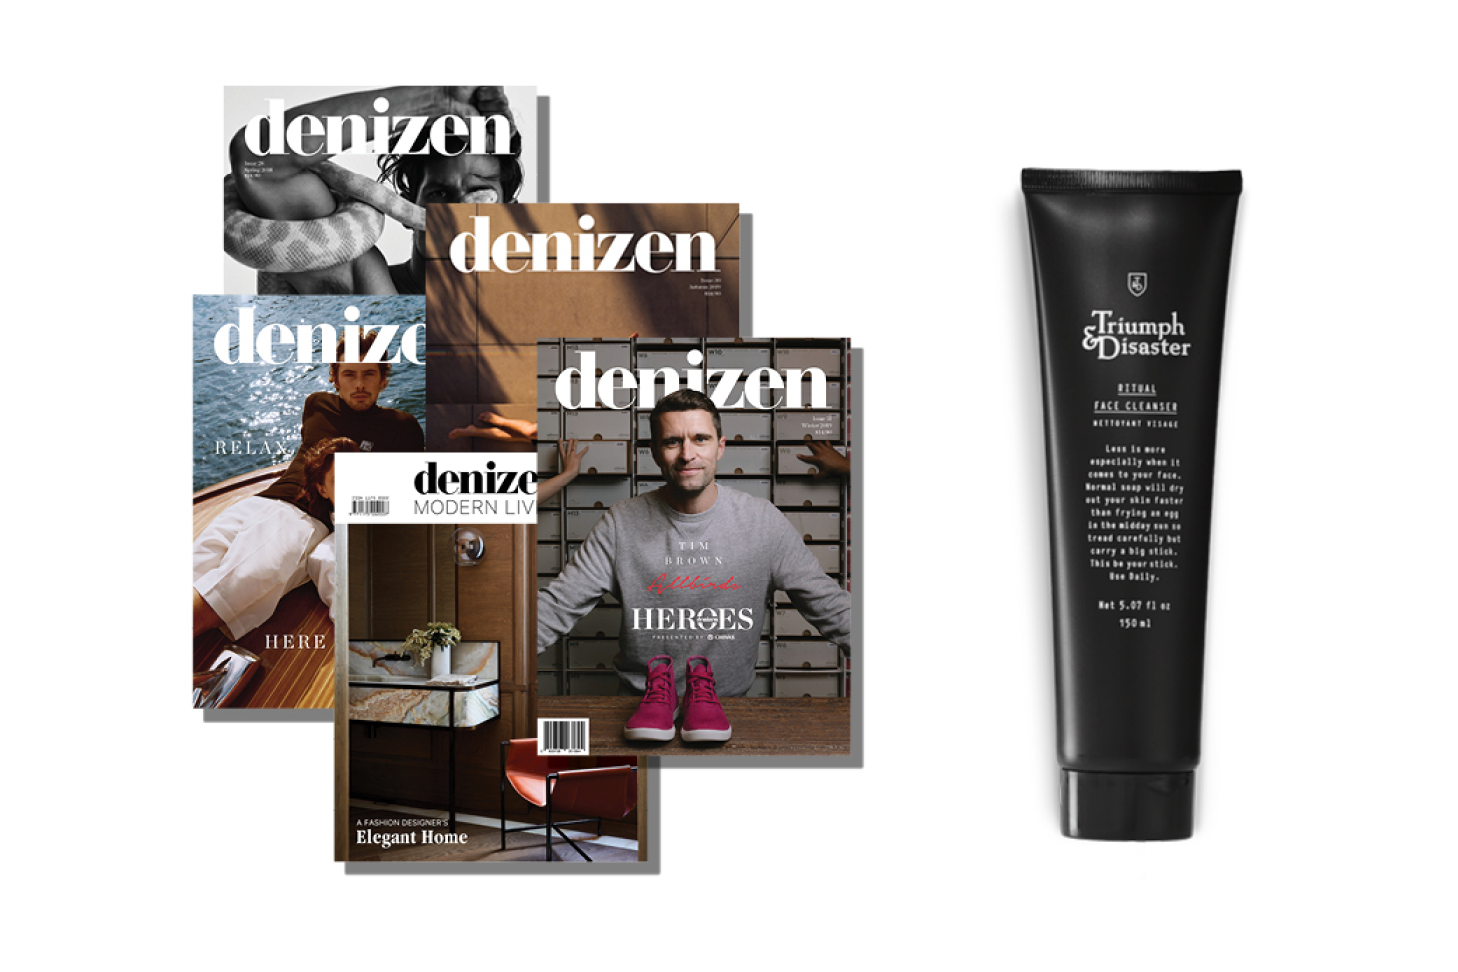 A Father's Day Subscription with Triumph & Disaster Ritual Face Cleanser Gift